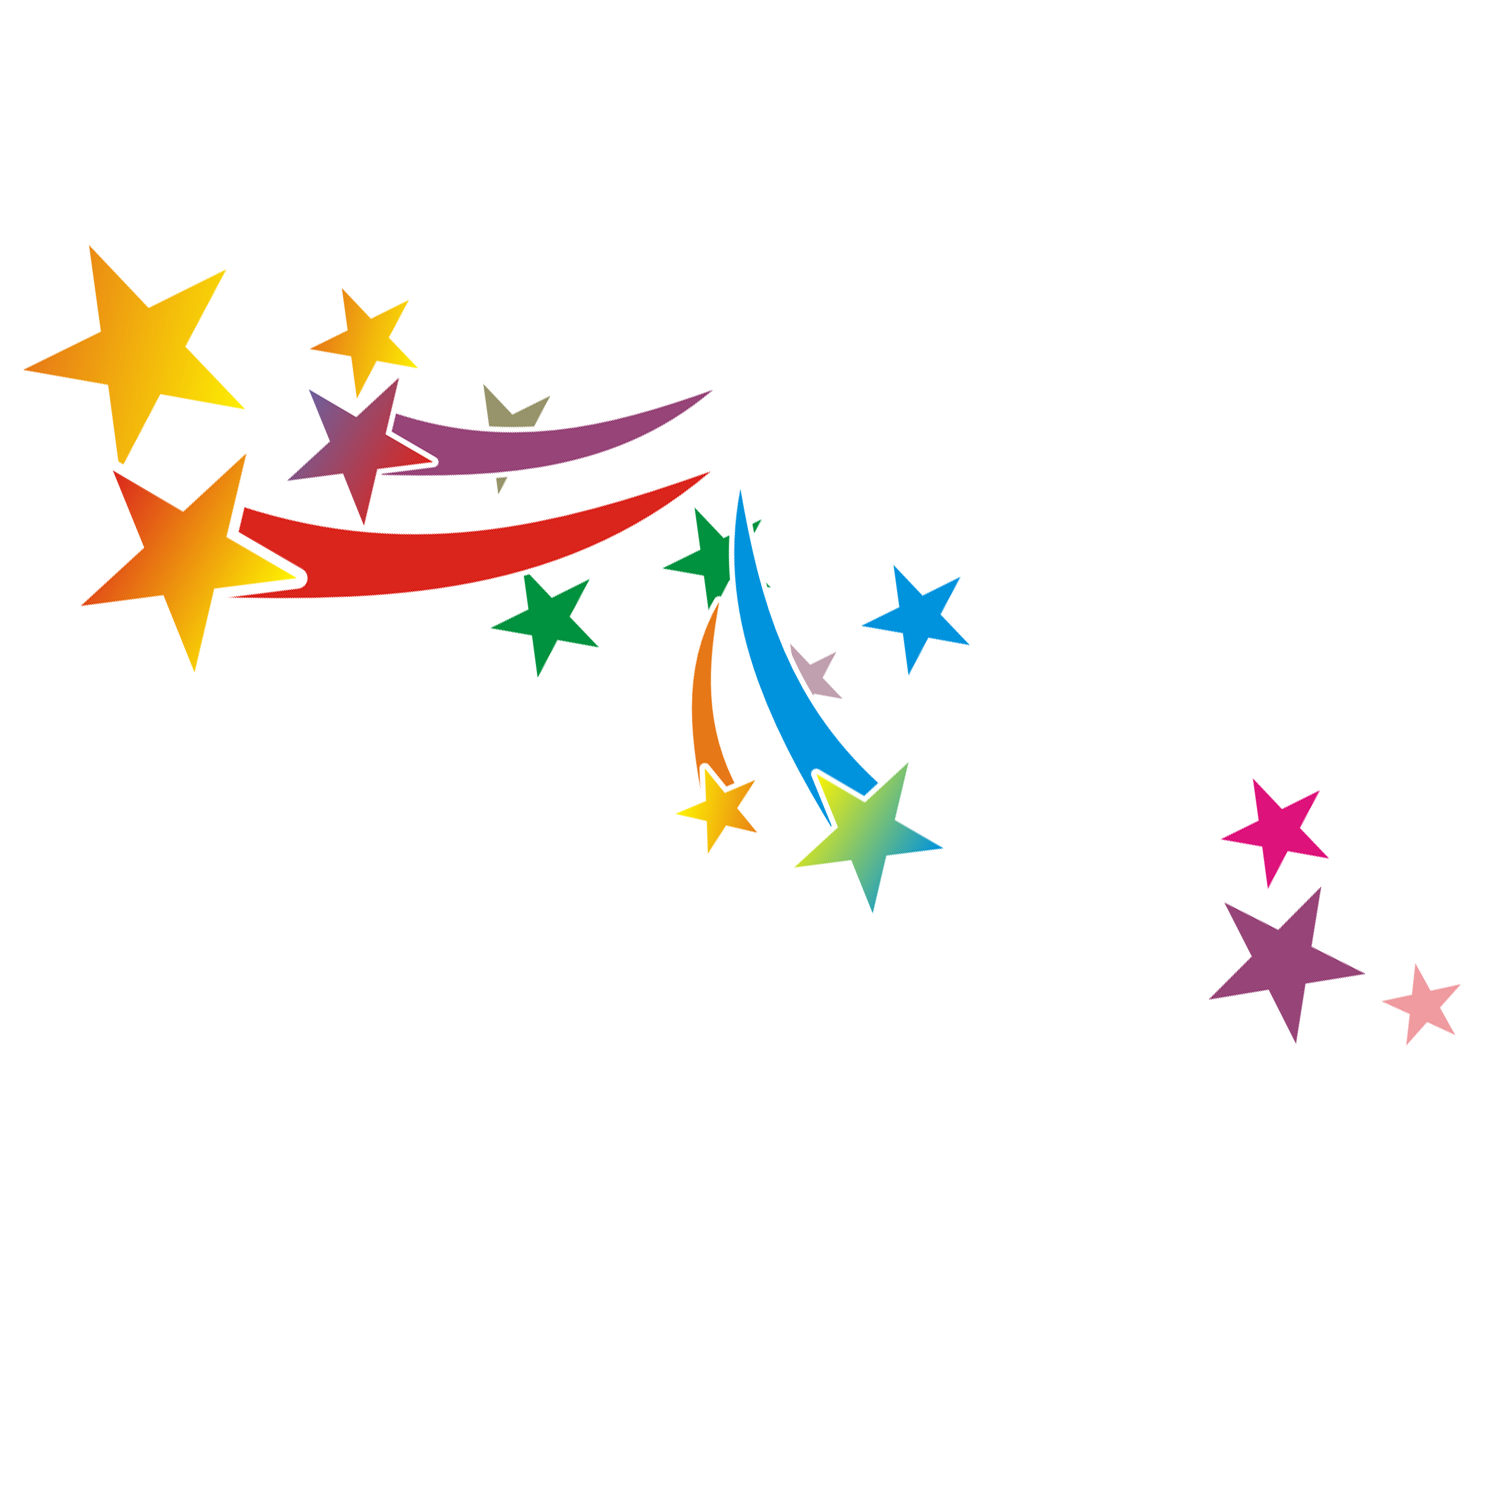 free download Colorful drawing. Moon star clip art